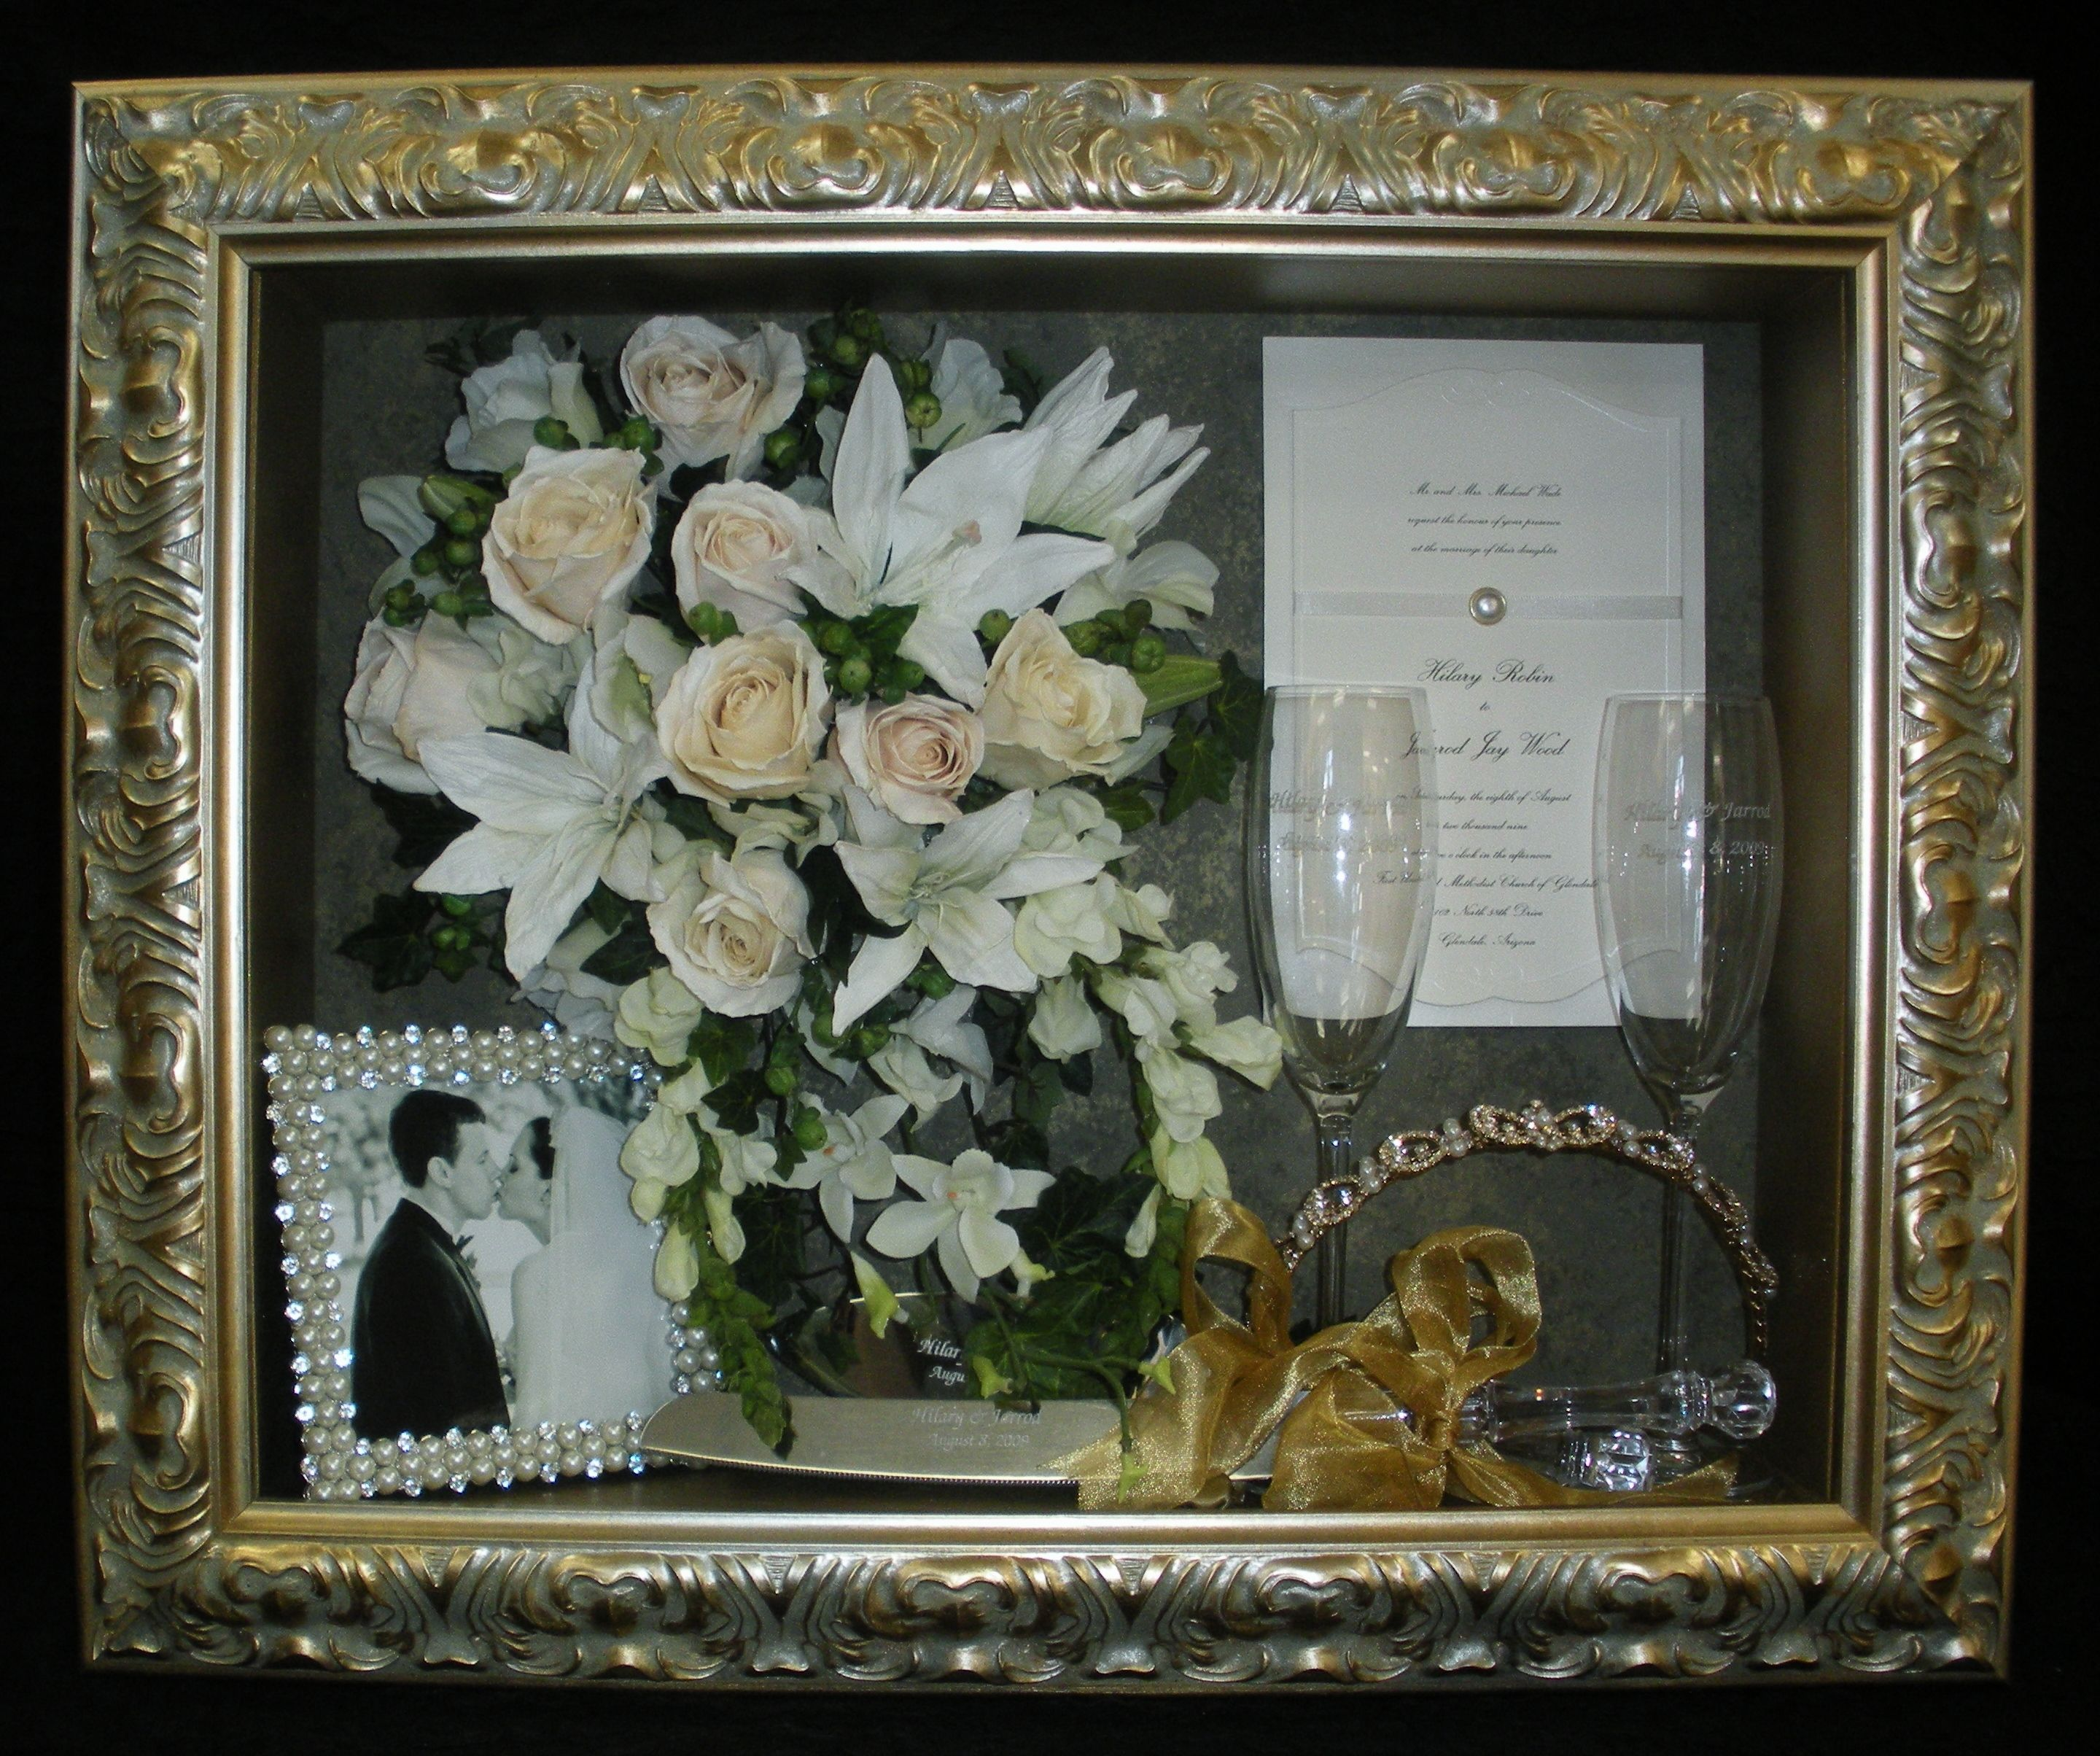 Freeze Dried Wedding Bouquet Flowers In Our Custom Shadow Box Facebook